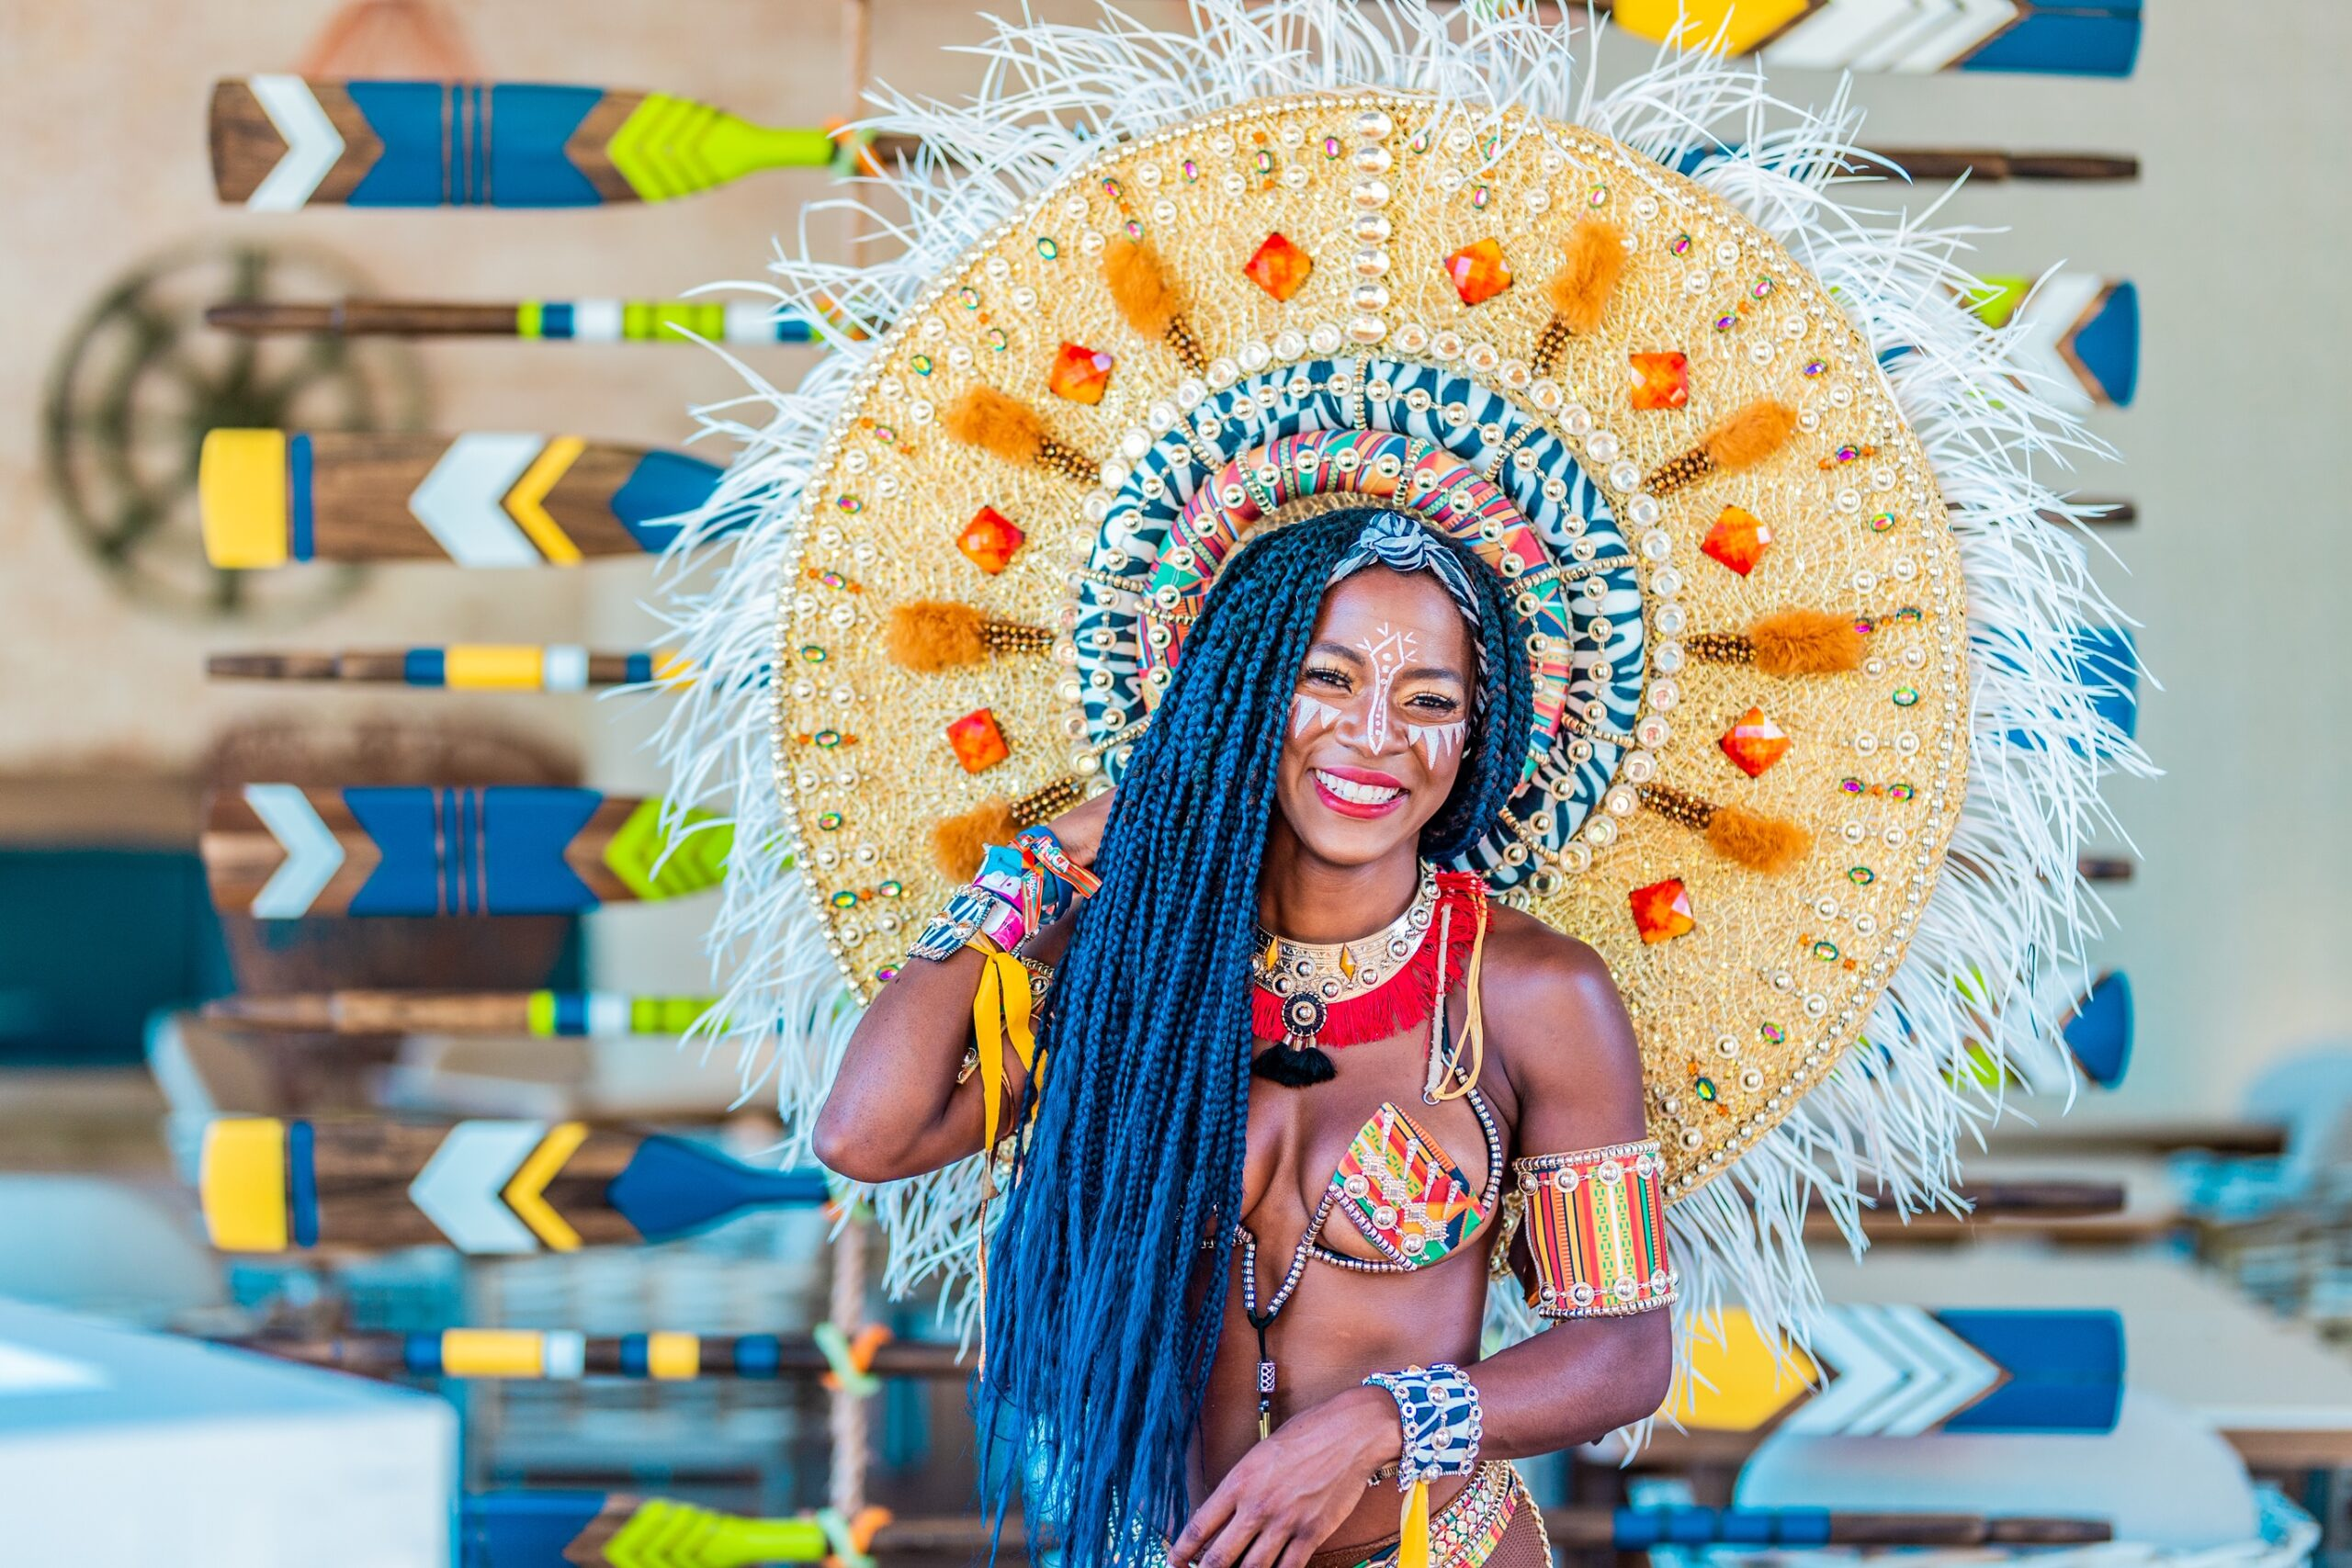 Bahamianista at Carnival